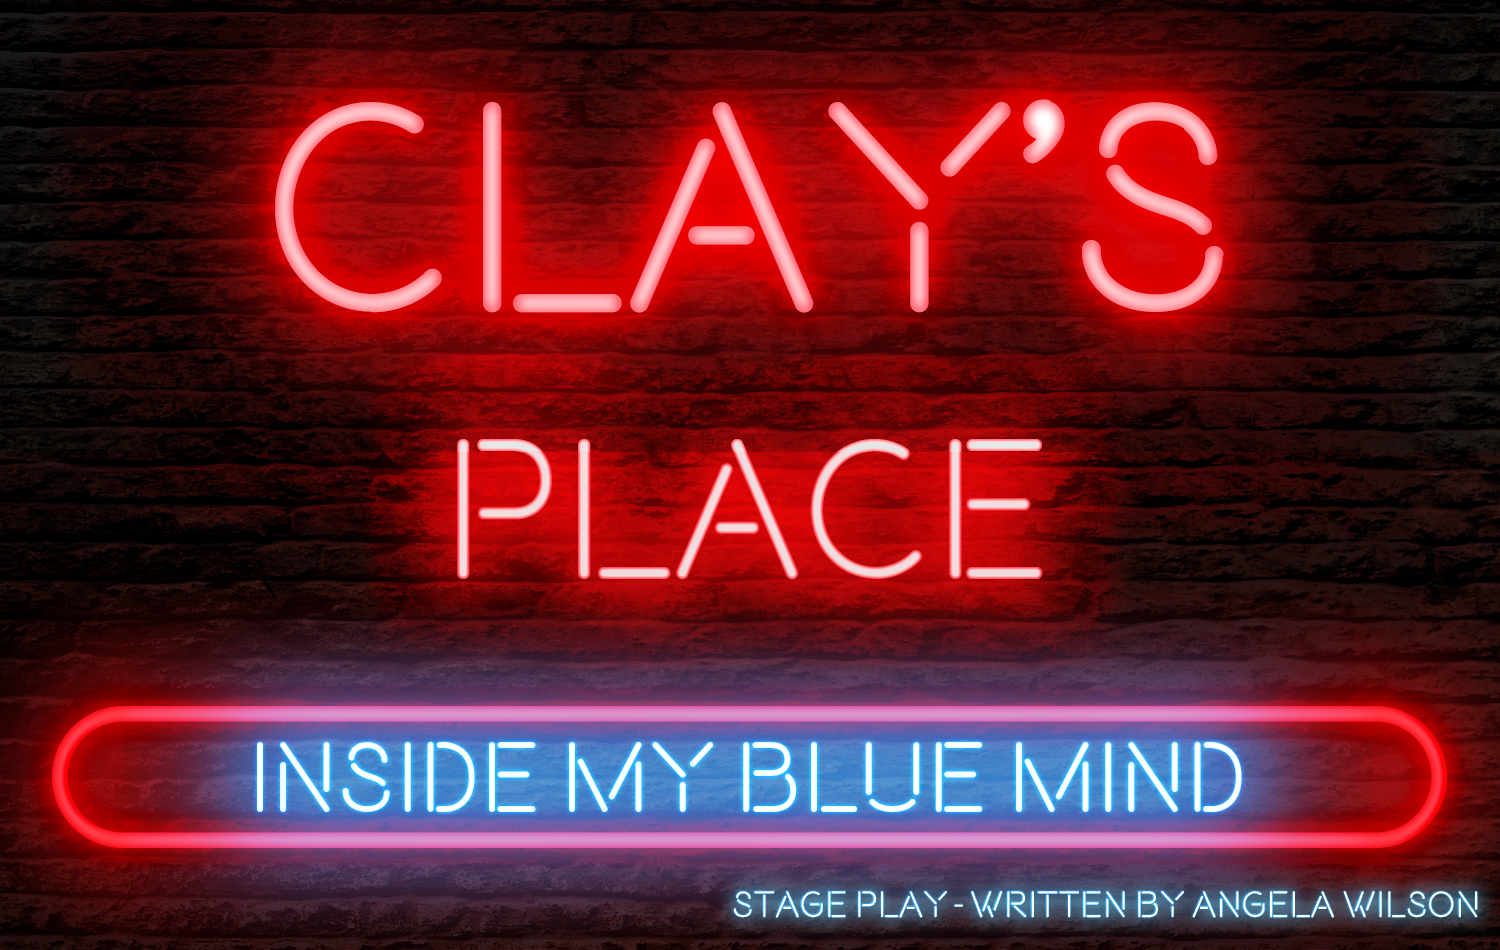 The AngelWing Project Presents Clay's Place: Inside My Blue Mind, an Exhilarating New Play That Transports Audiences to Memphis's Beale Street Set in 1956